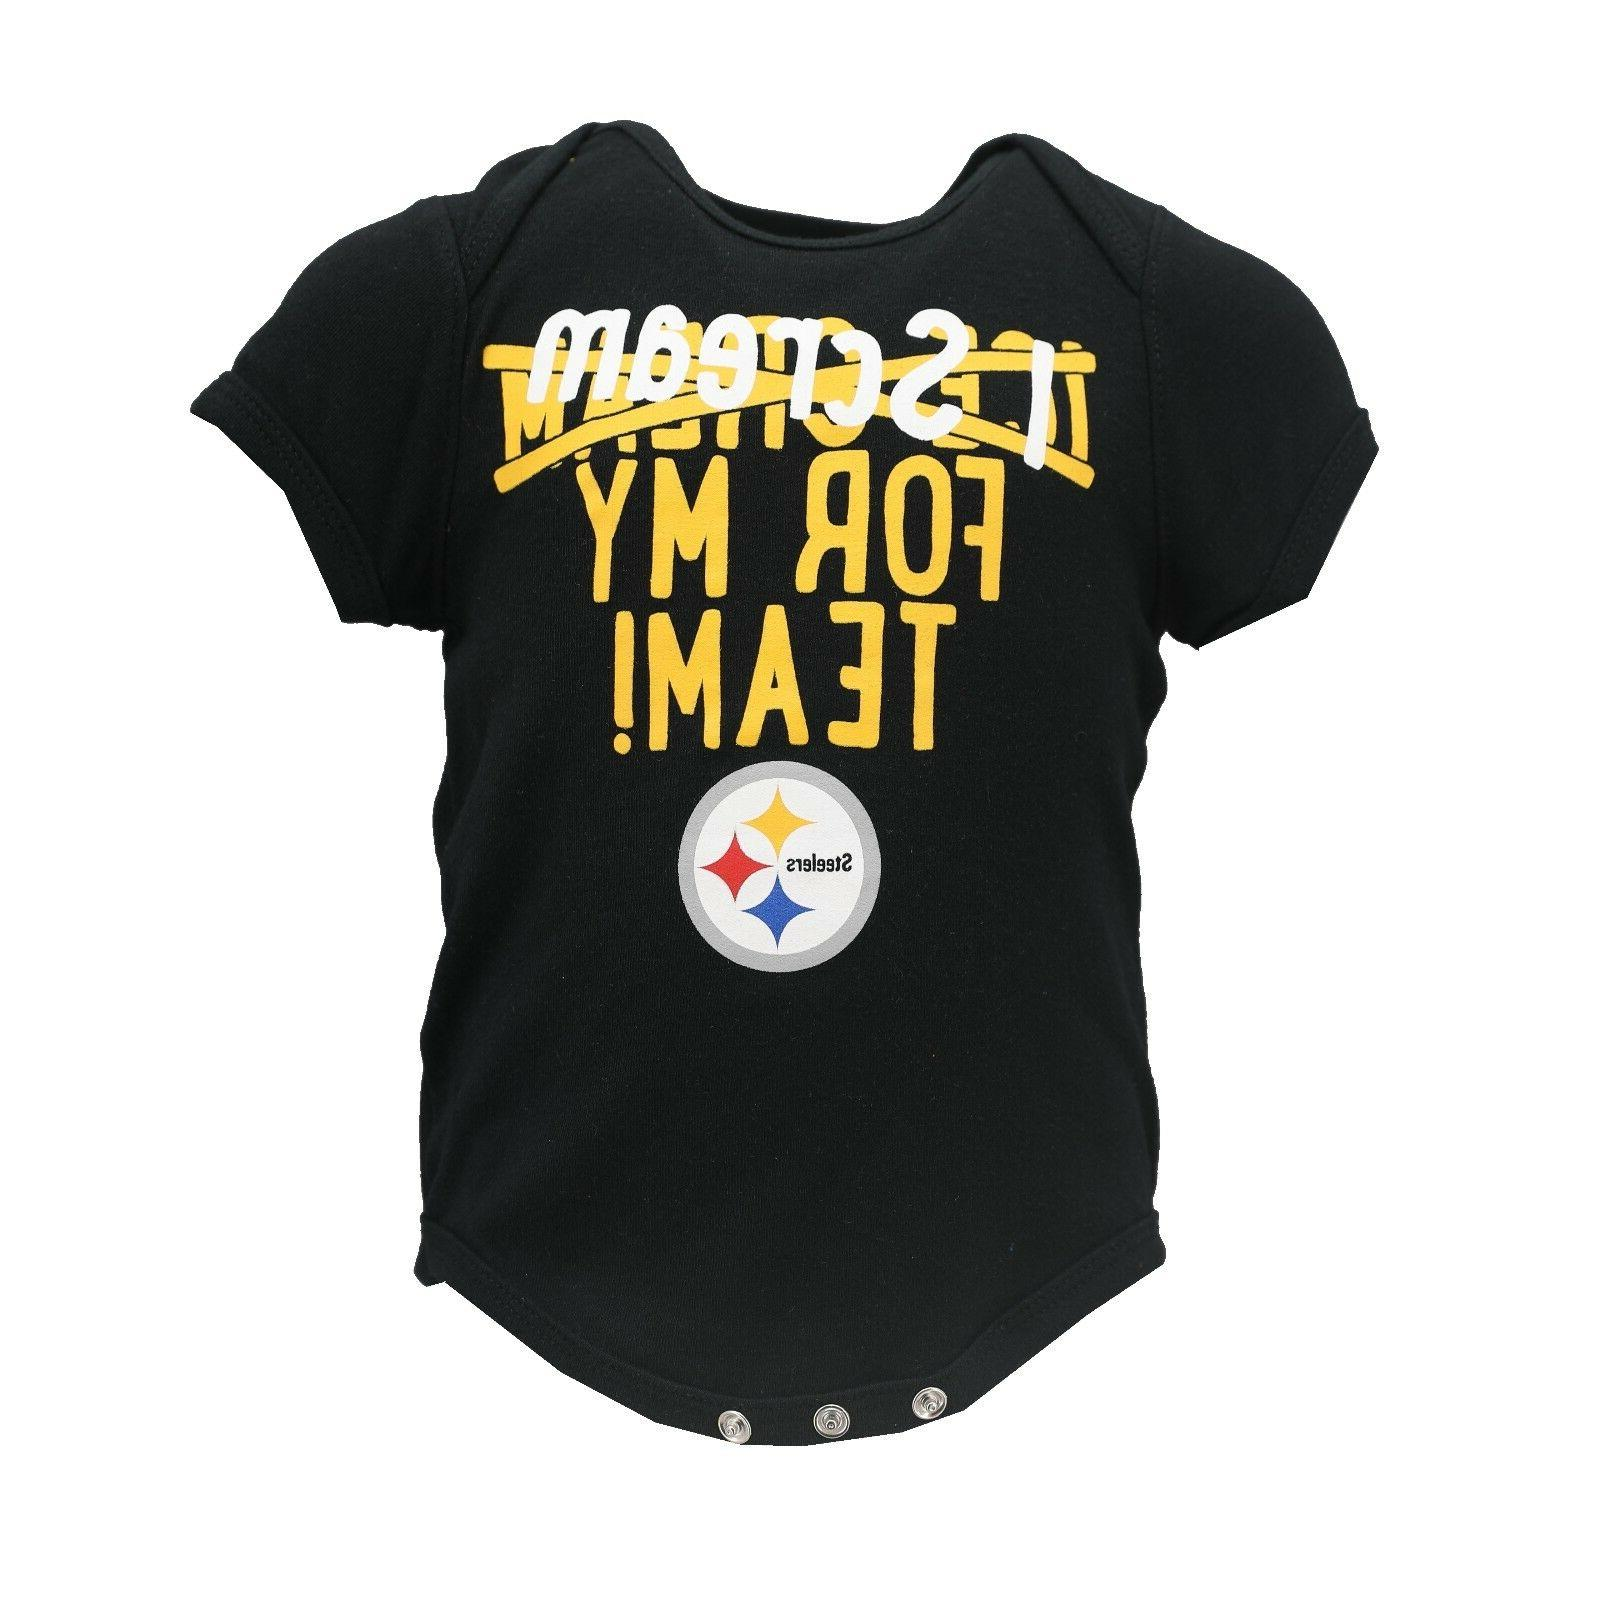 pittsburgh steelers nfl official apparel infant baby